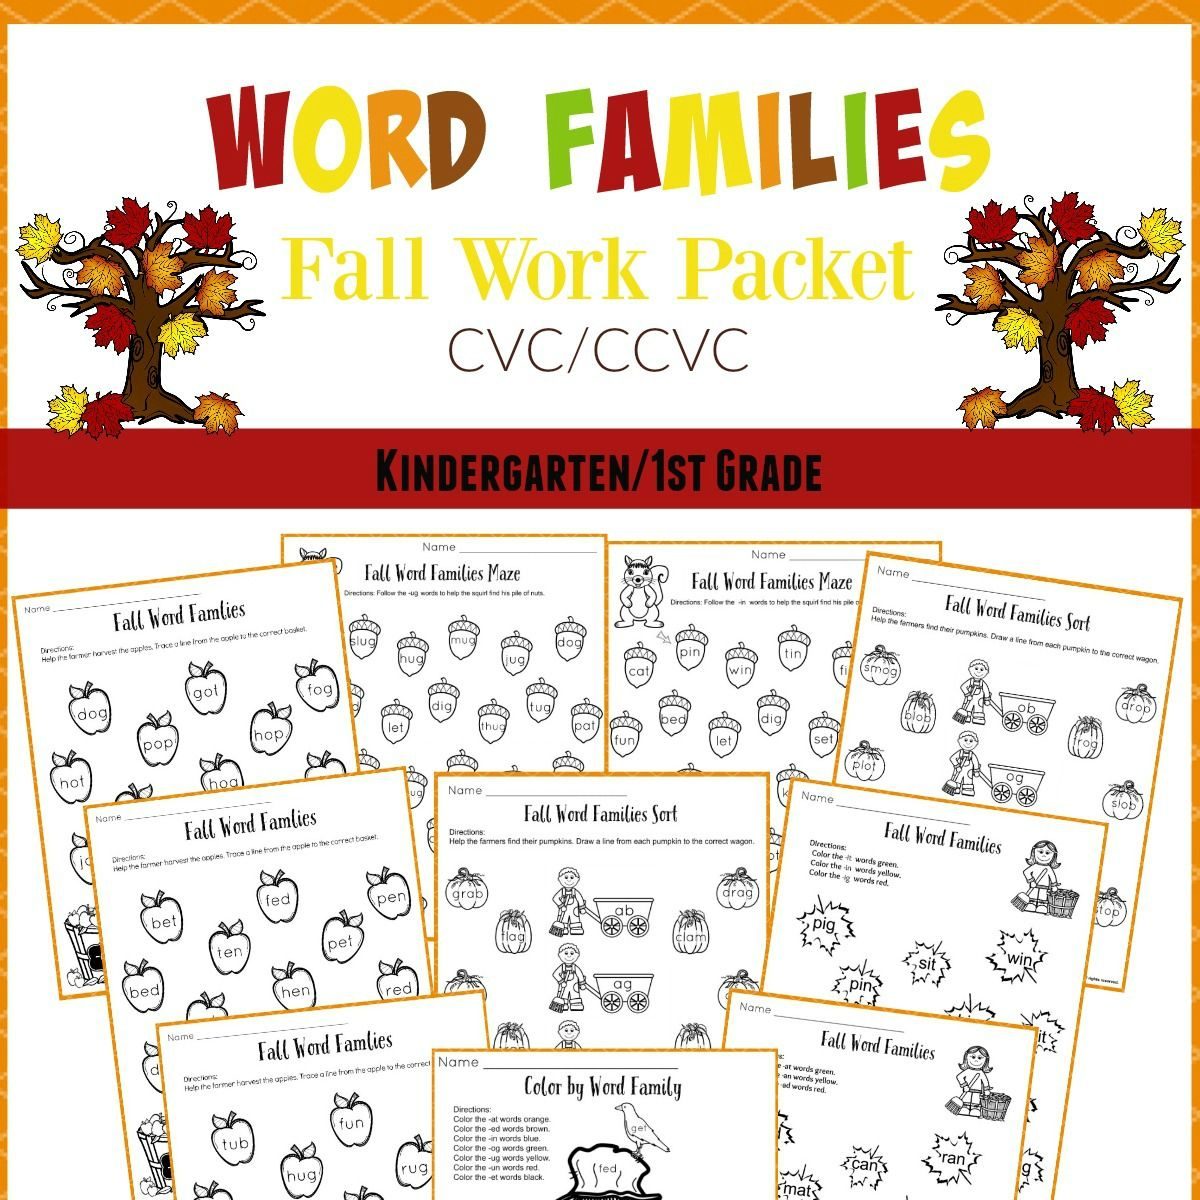 Fall Word Families Worksheets For Kindergarten Or 1st